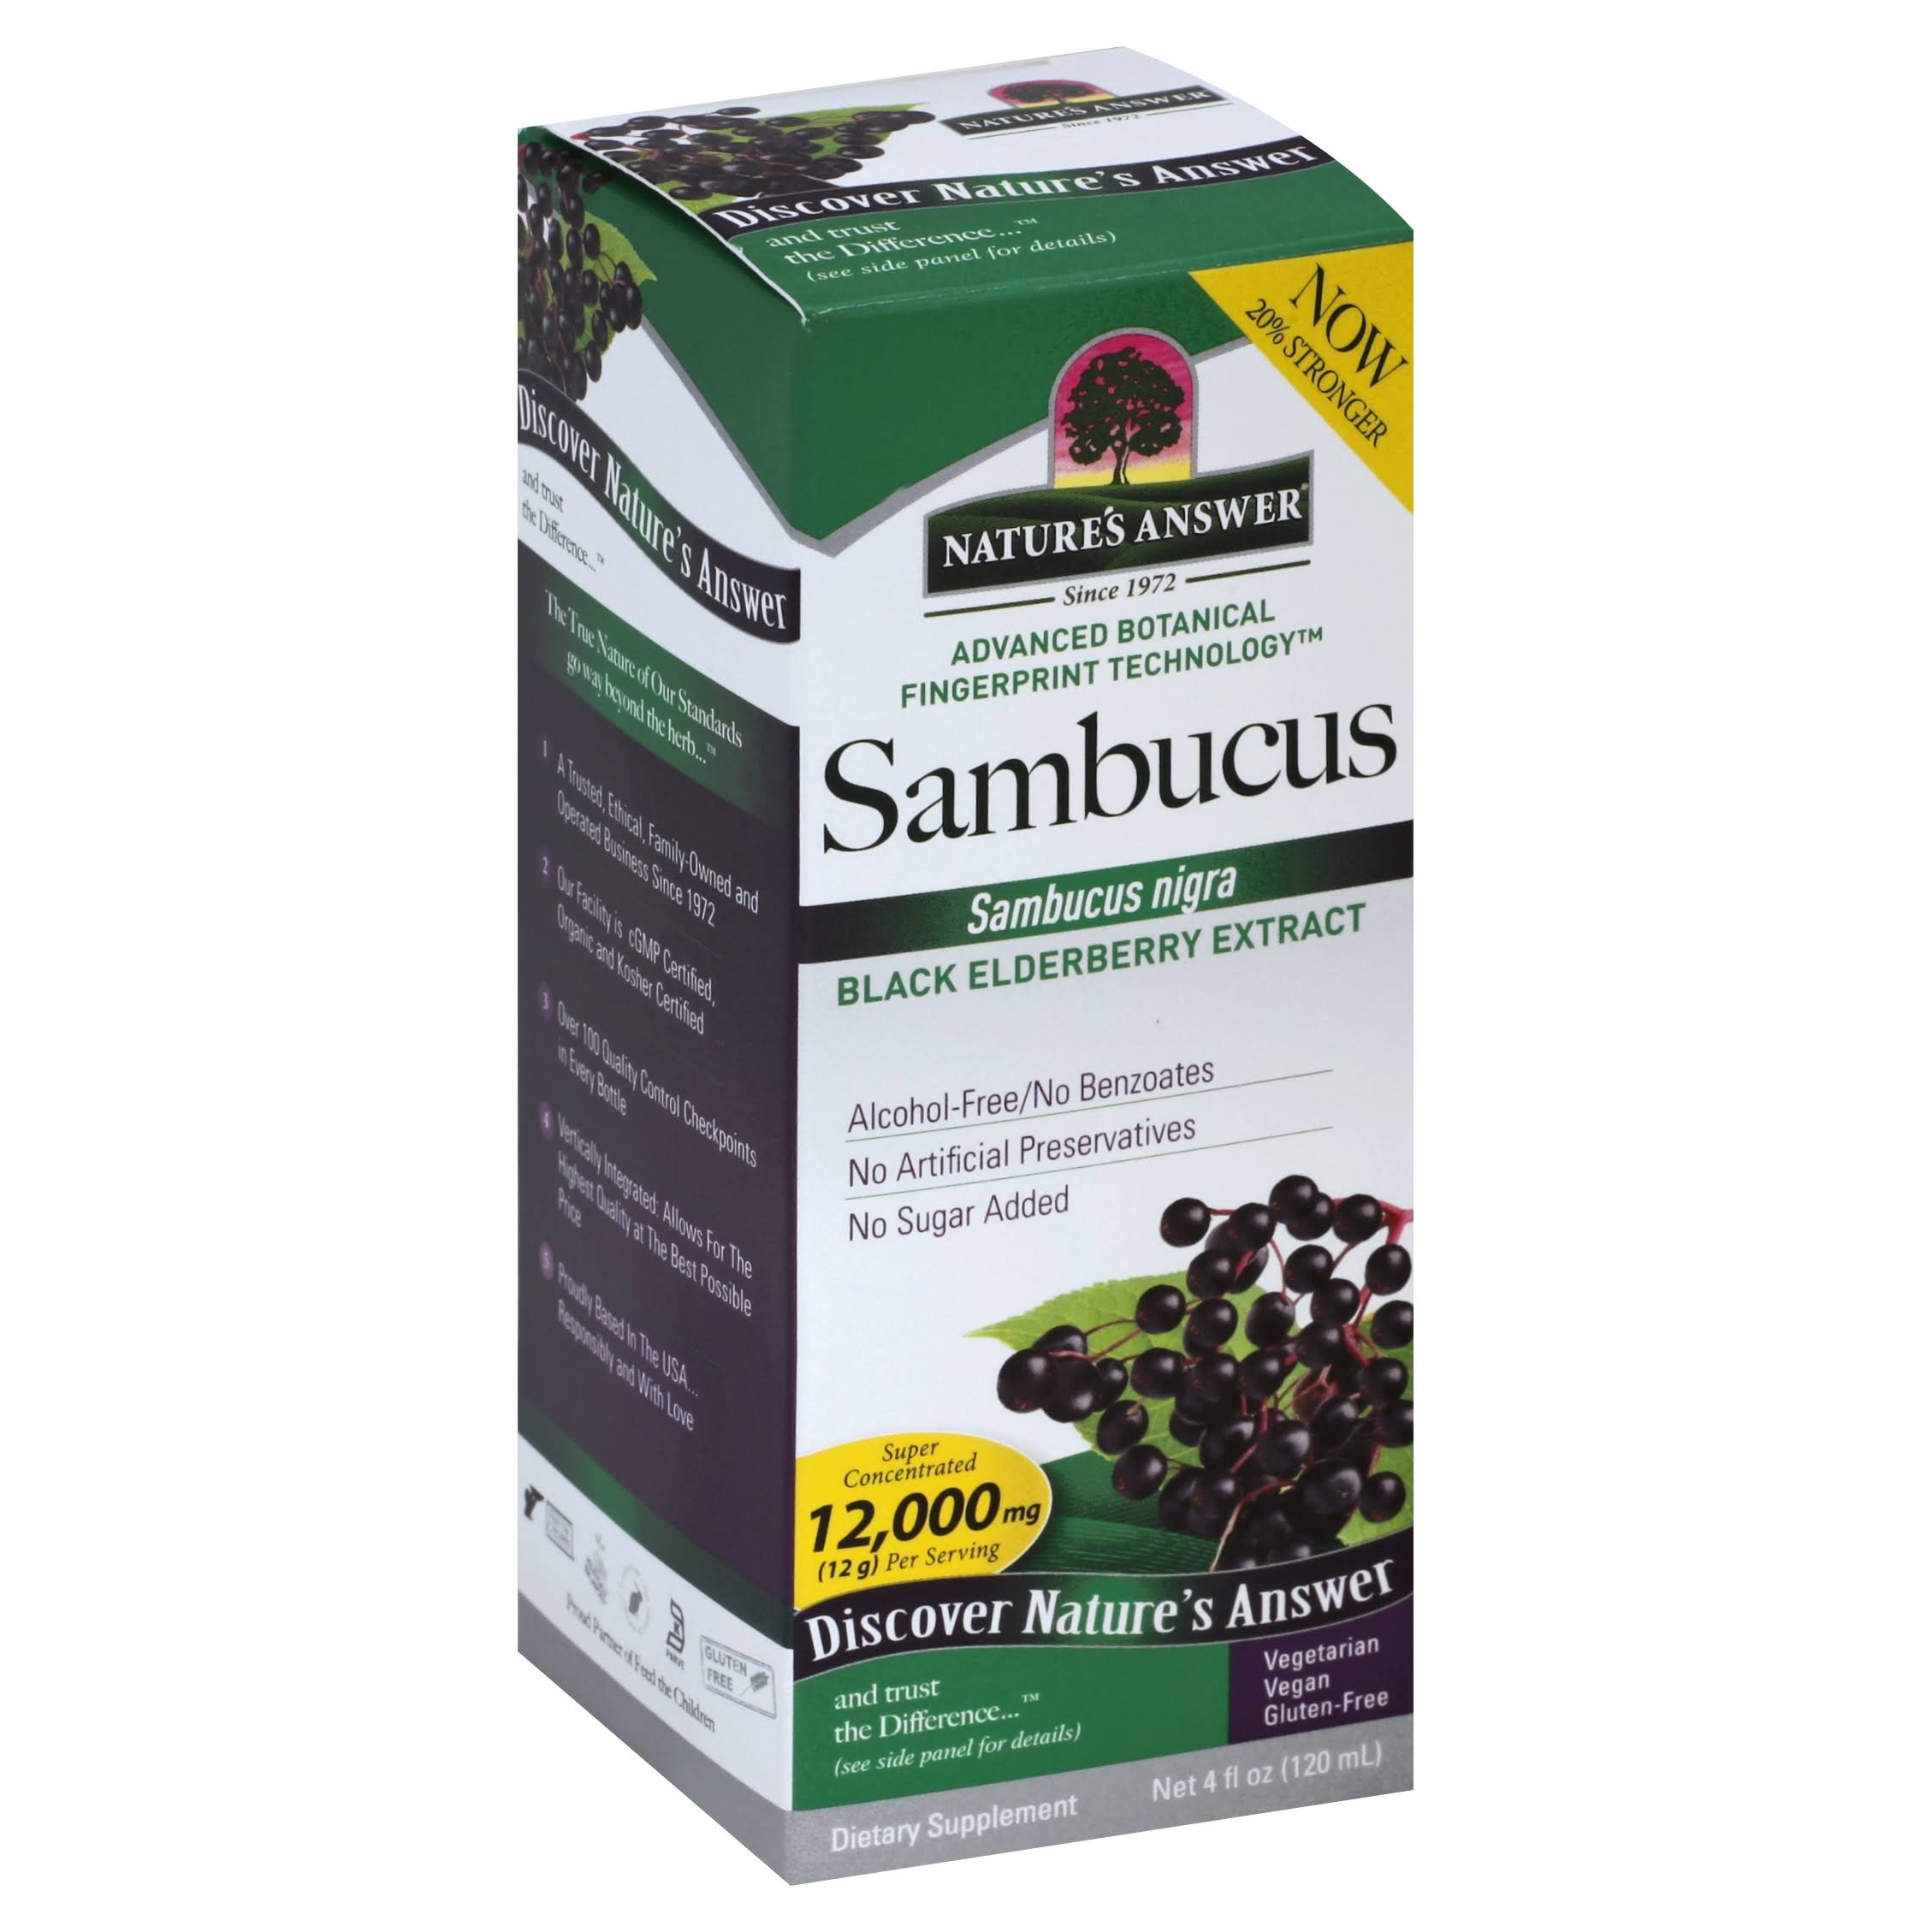 Nature's Answer Sambucus Black Elder Berry Extract - 120ml